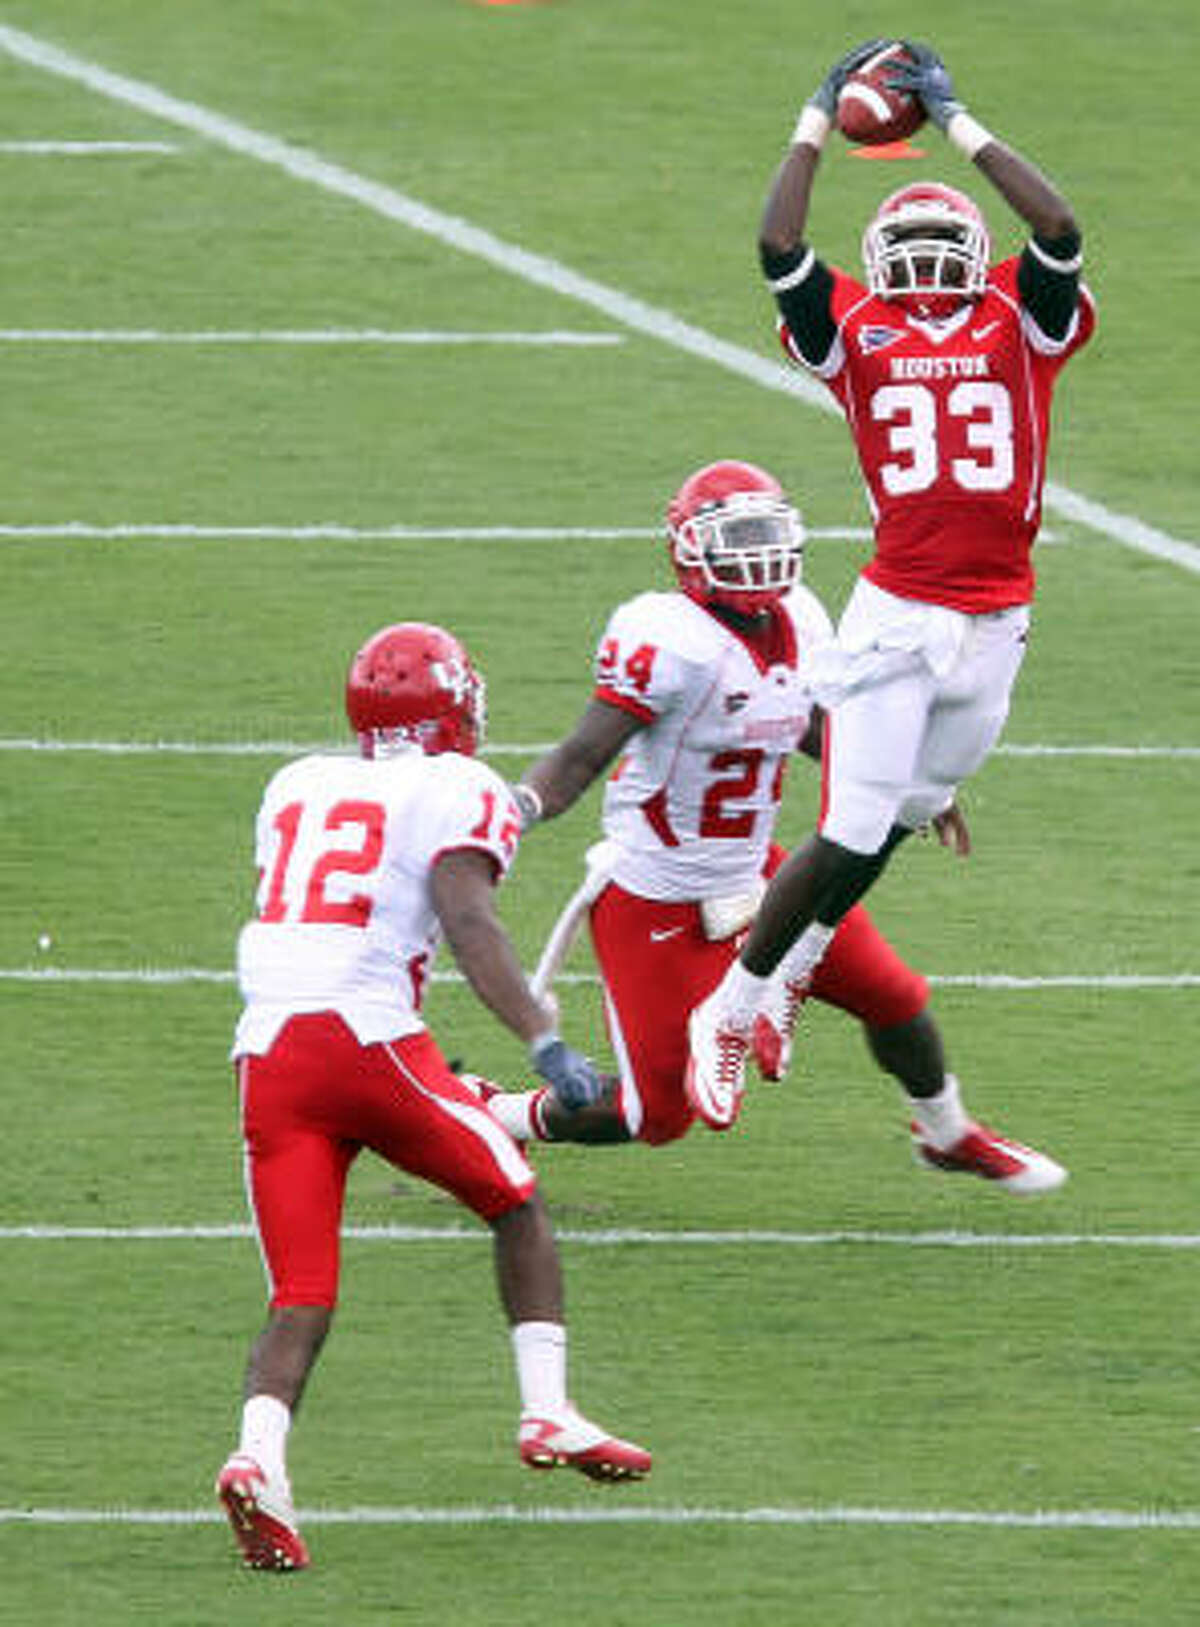 The University of Houston's Red team's Marcus Williams right, pulls in a pass over the White team's Chevy Bennett (left) and Kent Brooks (center).